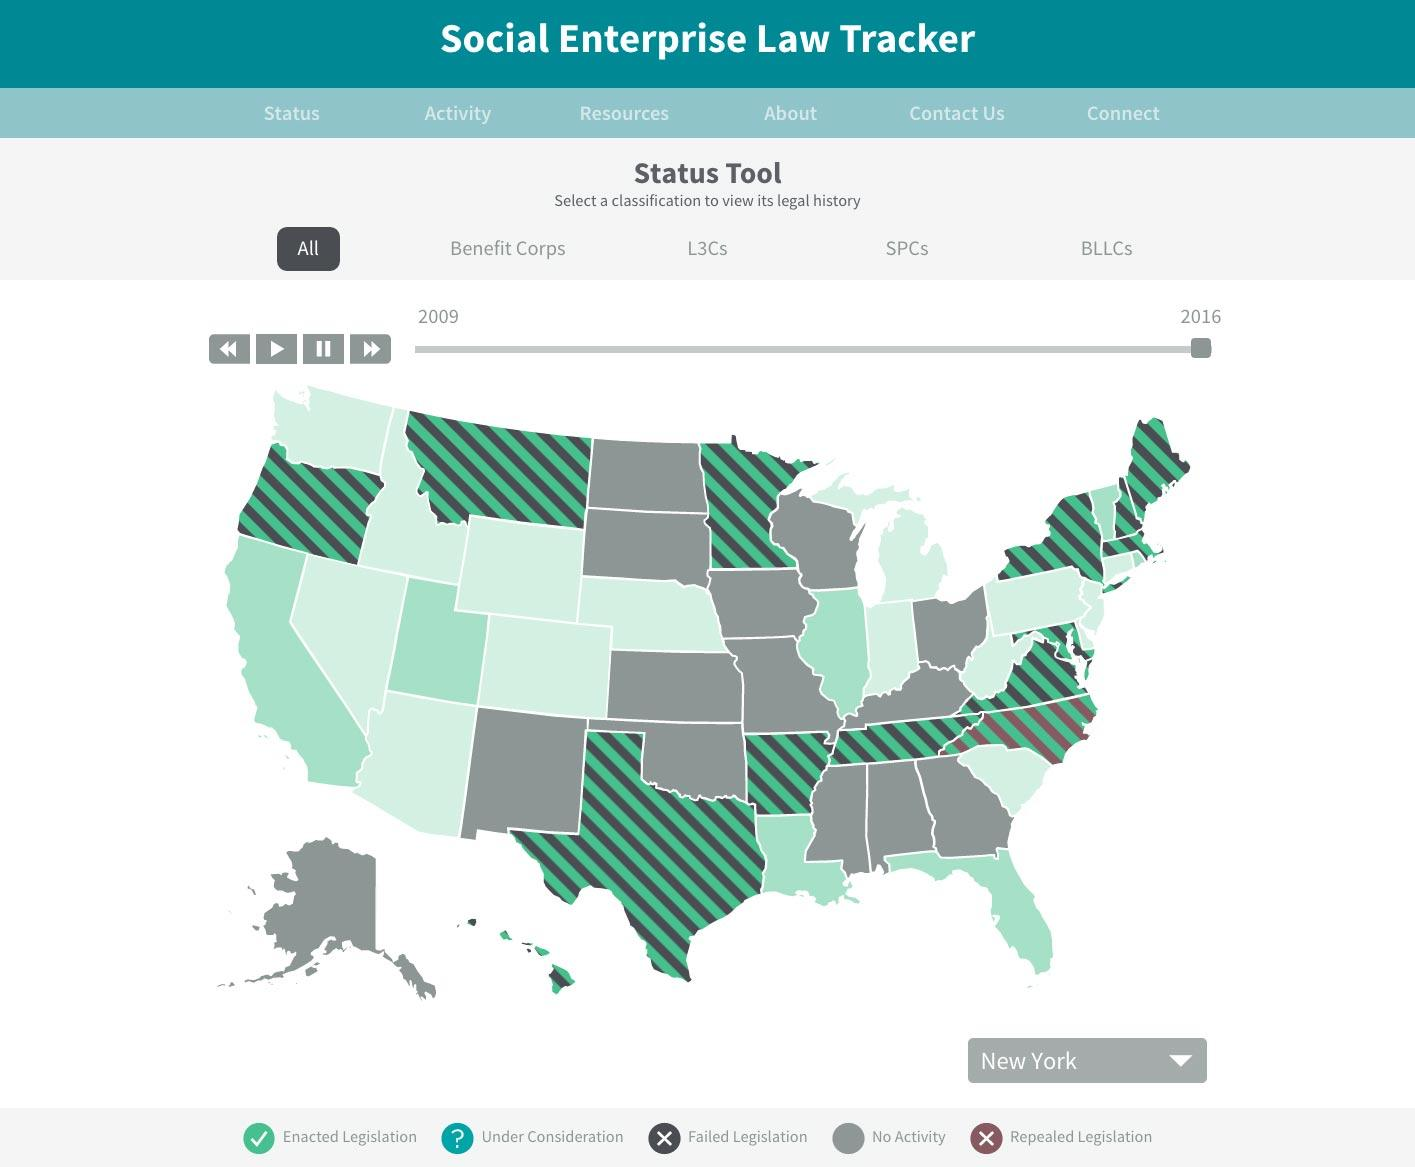 social-enterprise-law-tracker-01-large.jpg